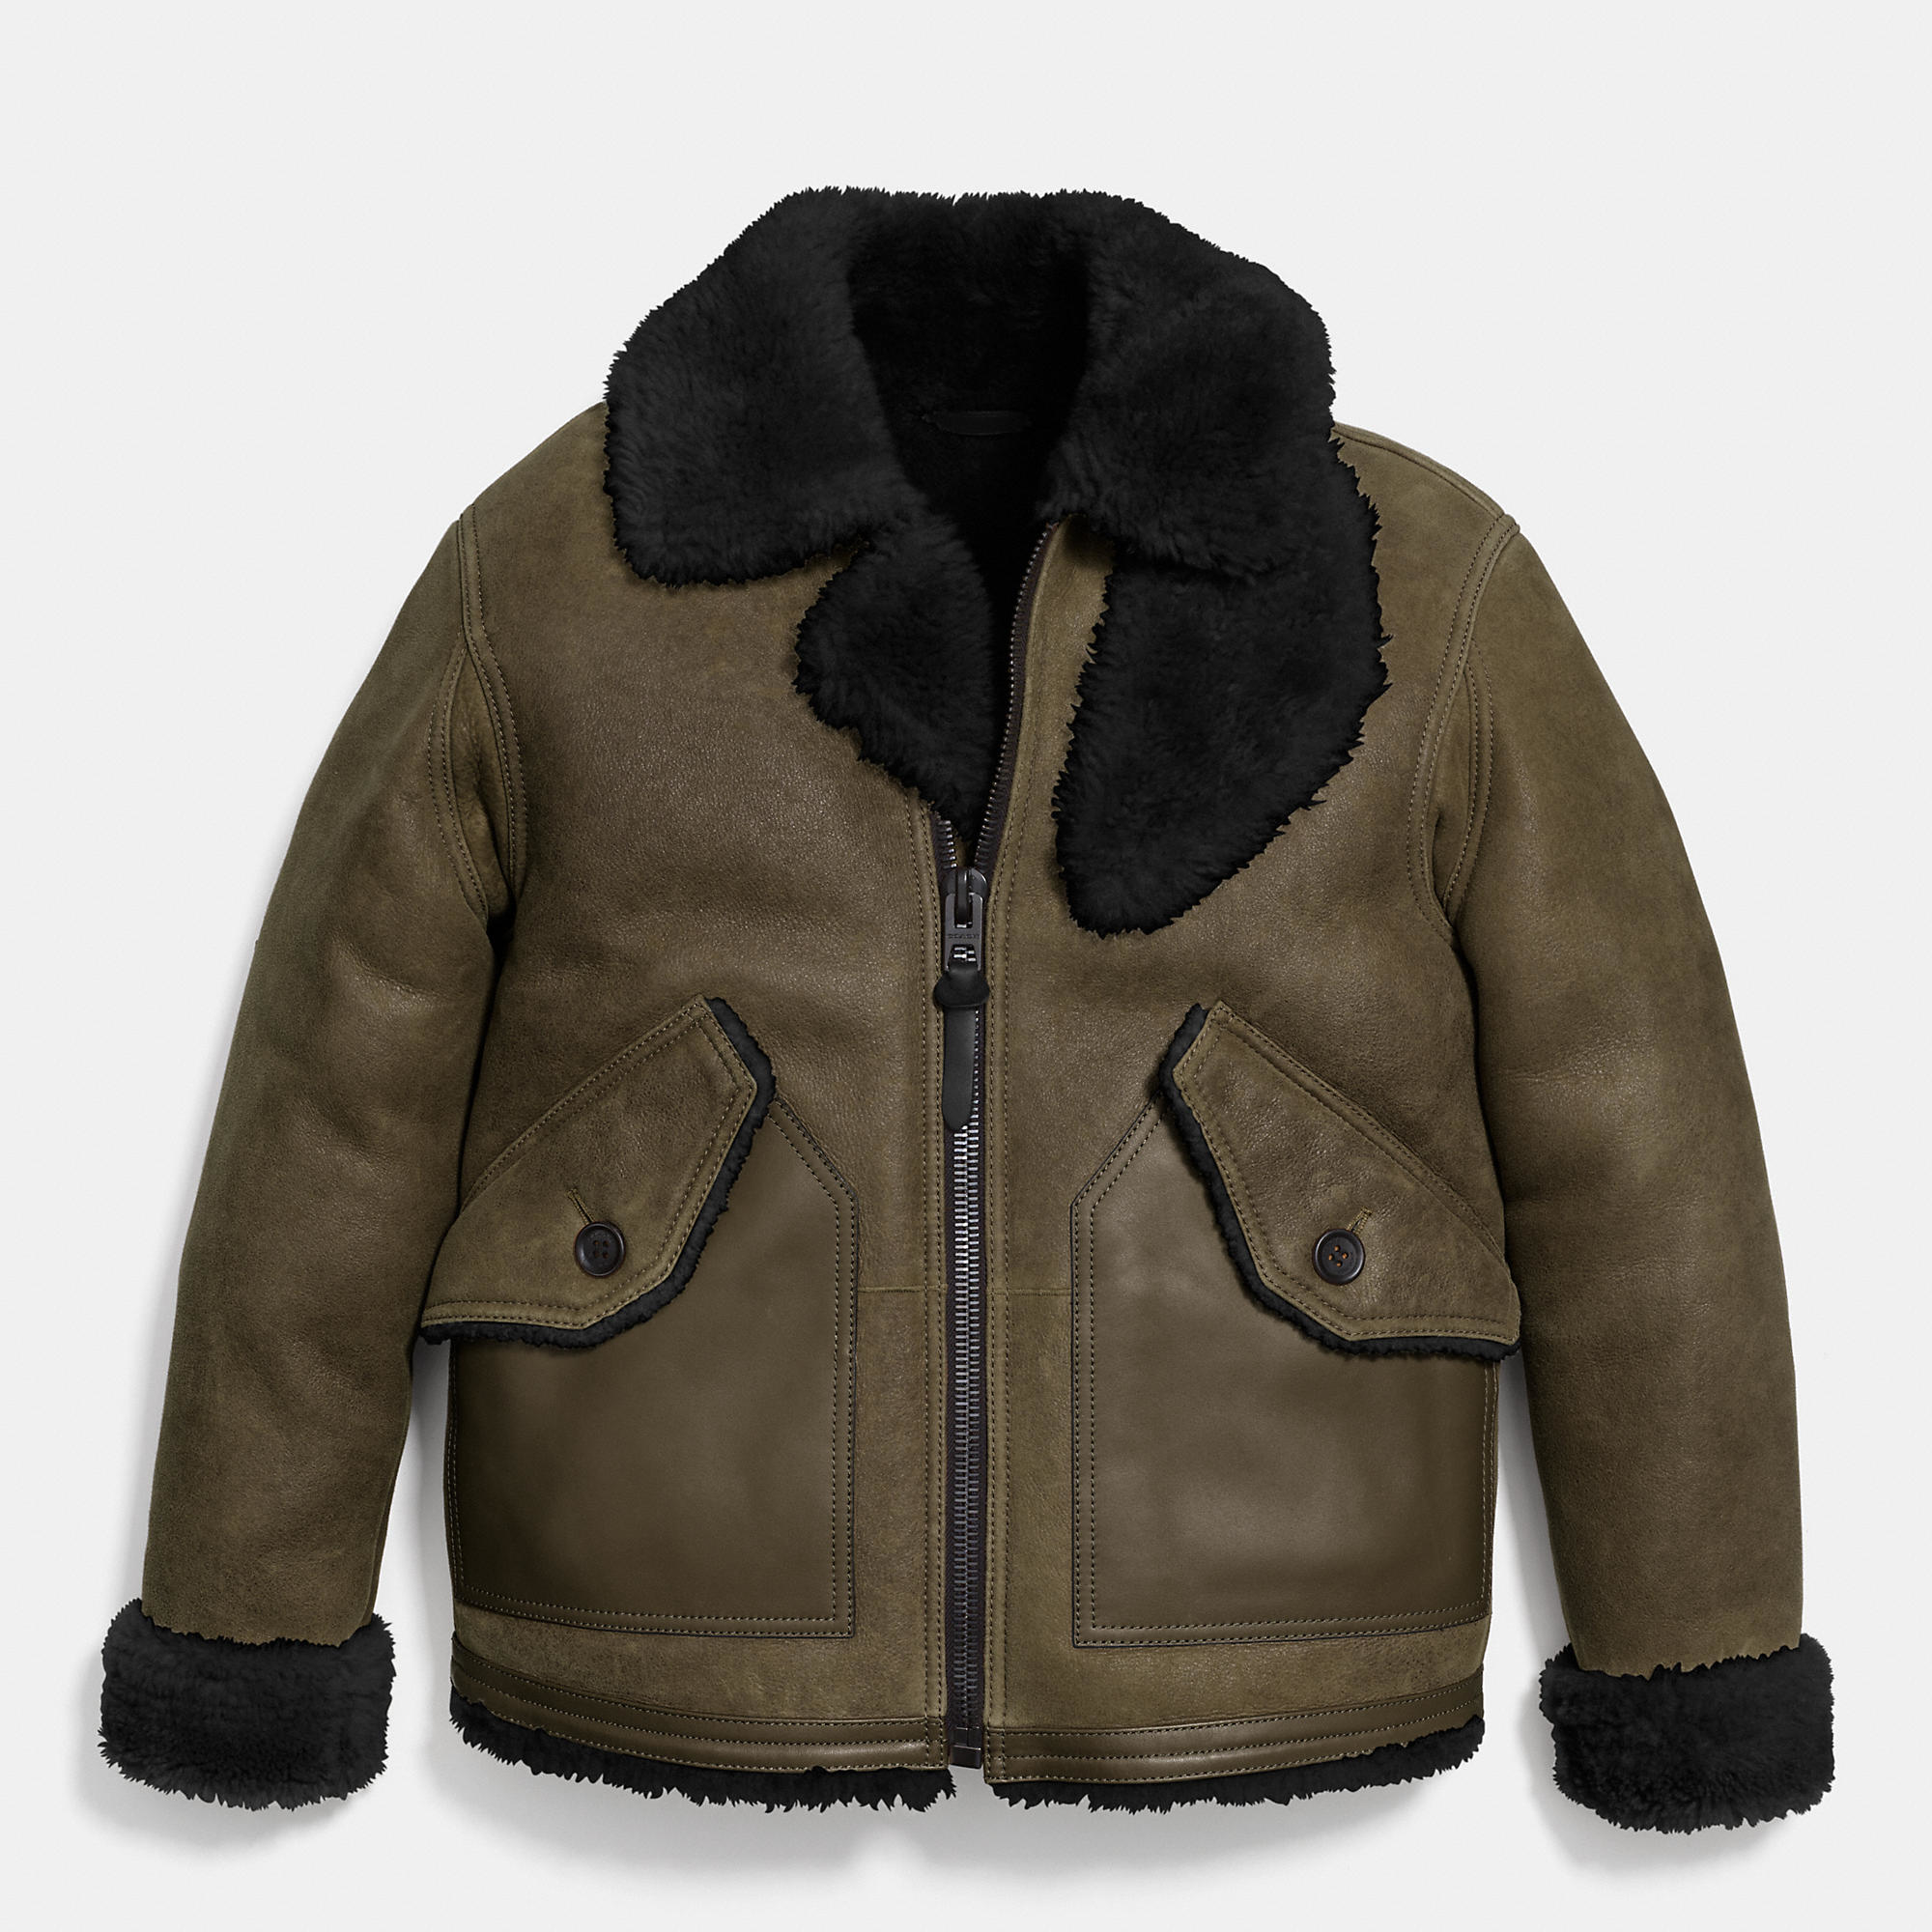 Lyst - Coach Shearling B3 Bomber Jacket in Green for Men